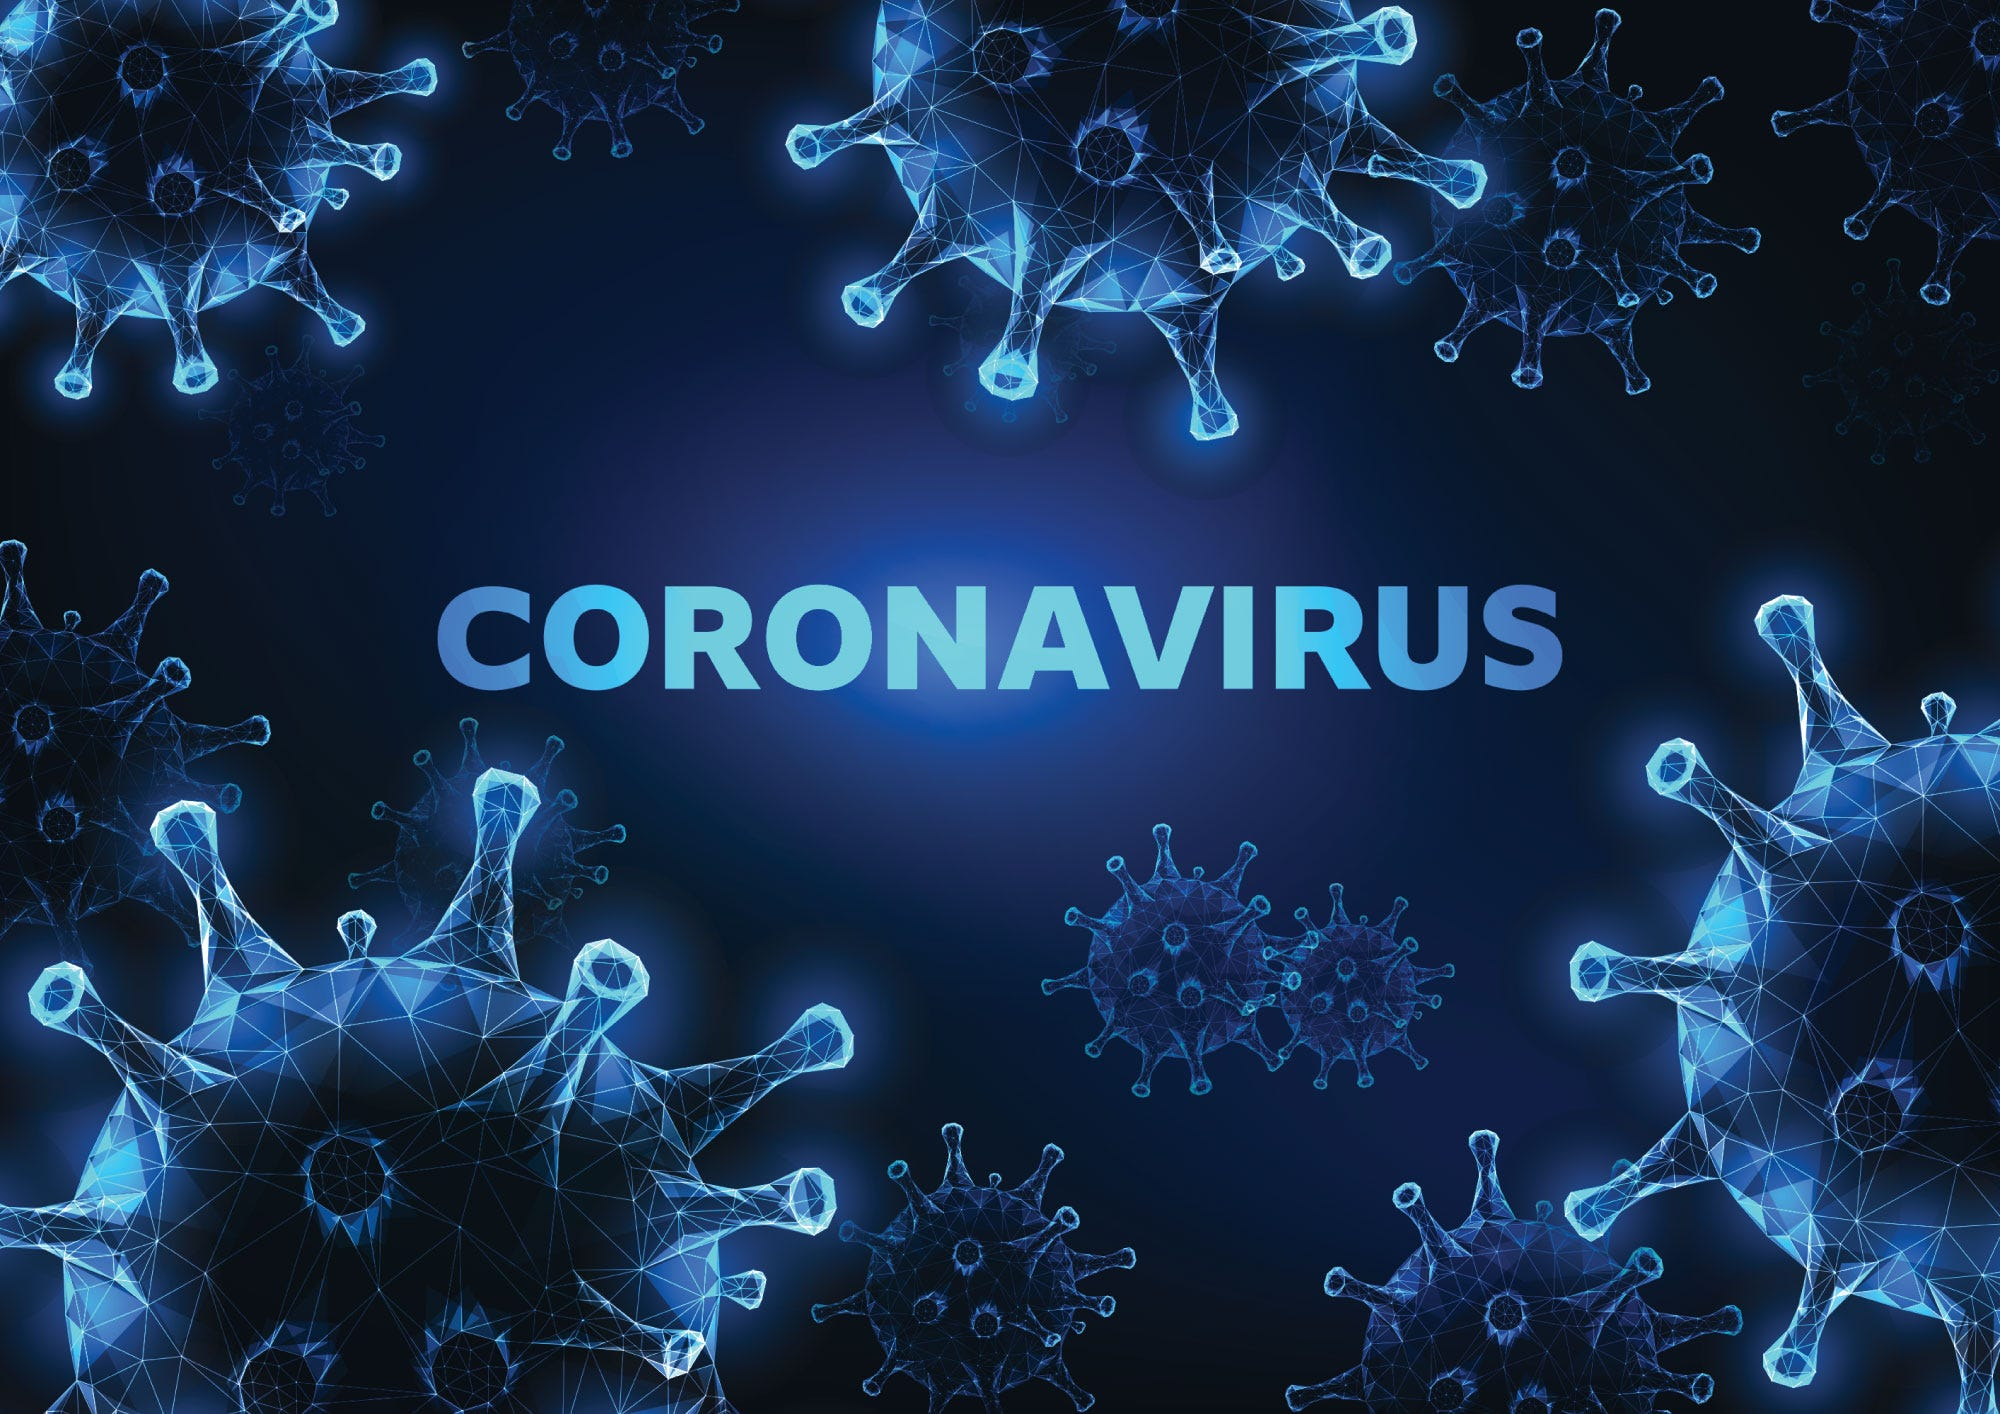 Coronavirus: Pa. senator wants to suspend HIPAA amid COVID-19 pandemic